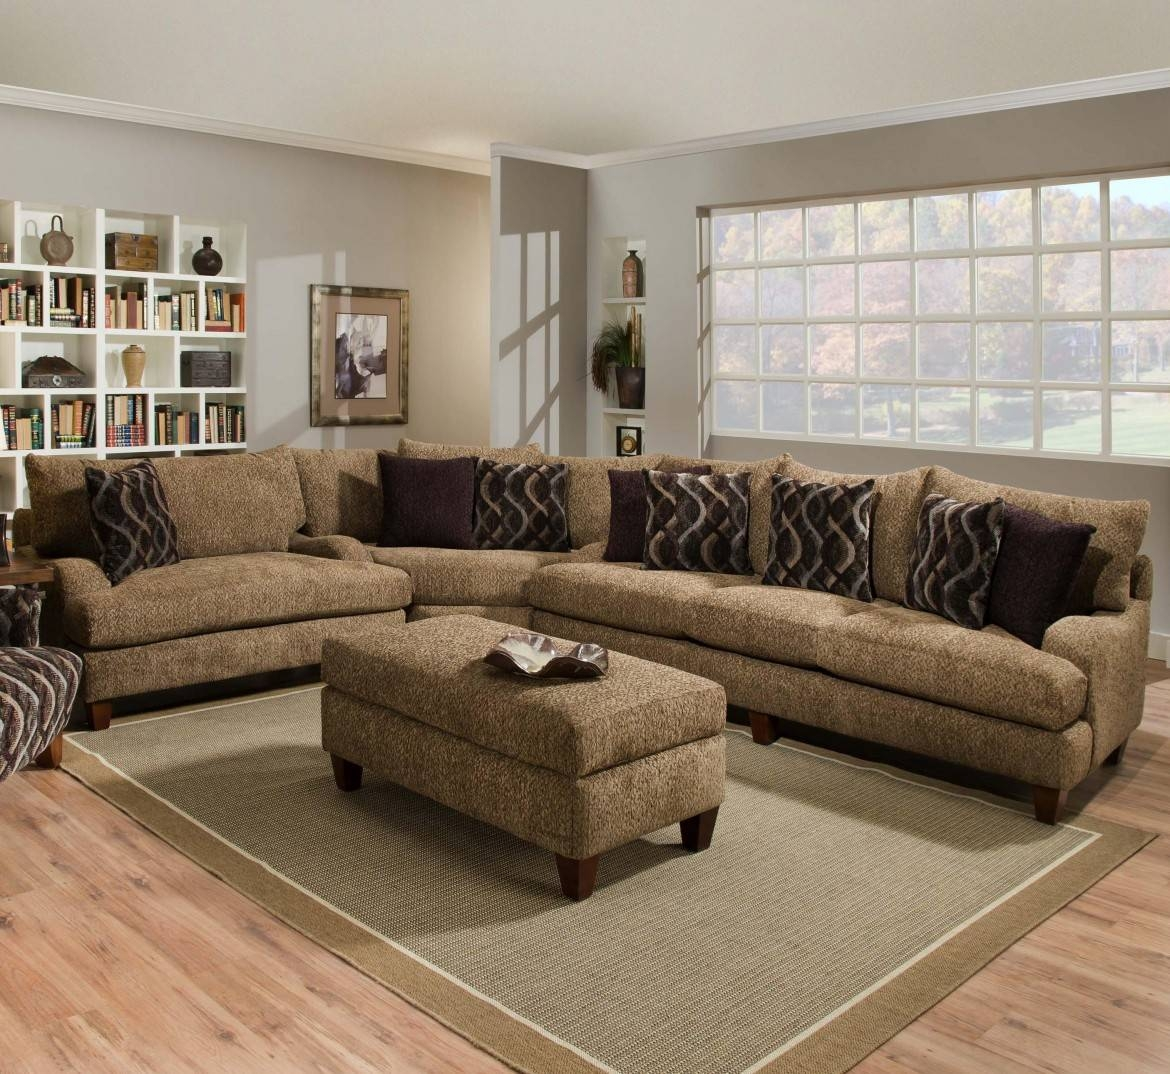 Furniture: Walmart Slipcovers | Slipcovers For Sofas And Loveseats With Regard To Sofas And Loveseats (View 5 of 30)